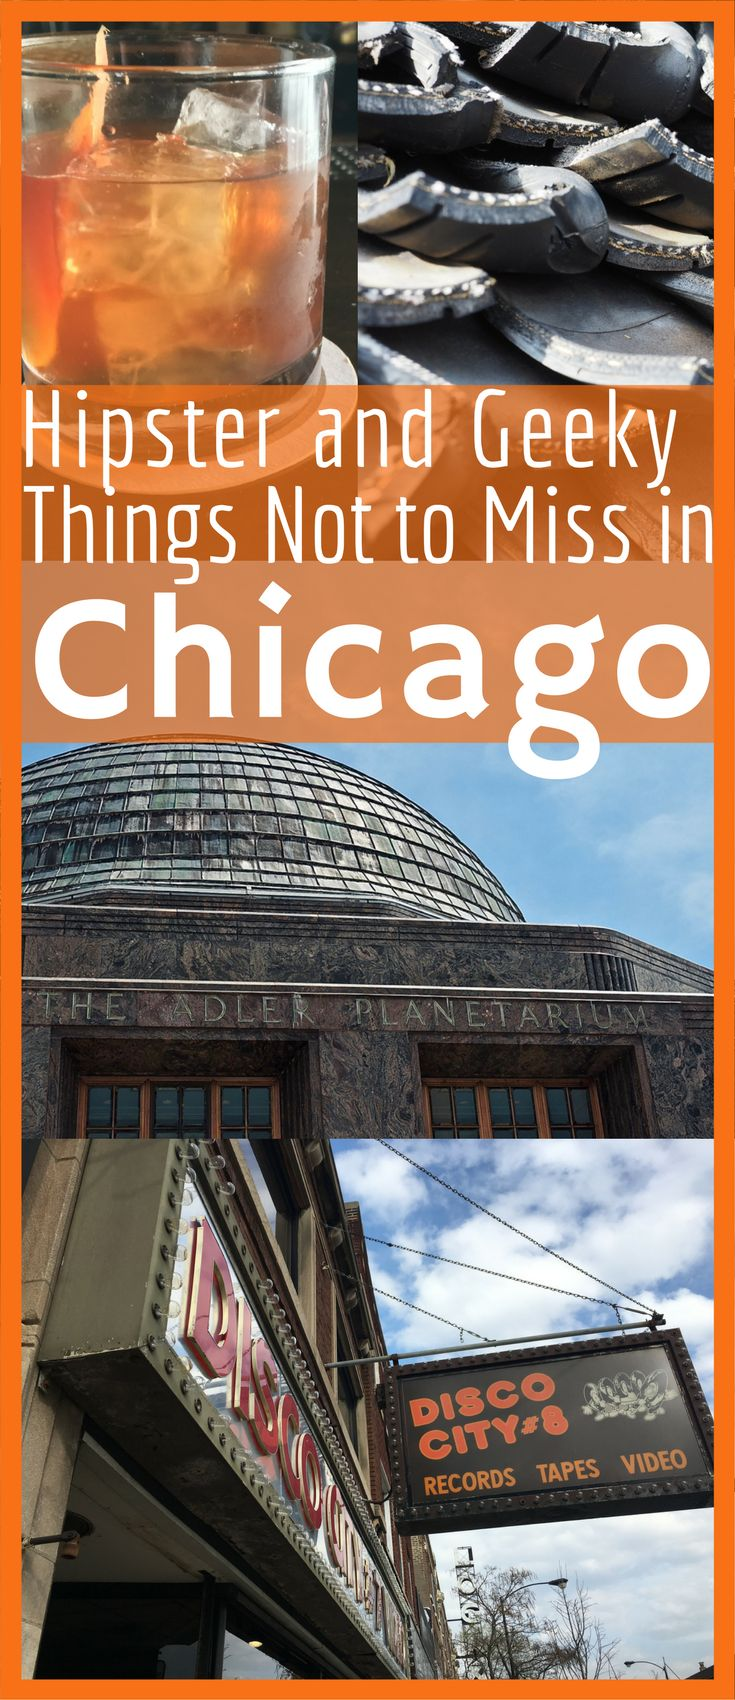 Don't miss these top hipster and geeky things to do in Chicago for your next trip in the U.S.A. This hipster and geek city guide to Chicago is everything you need for a fun weekend of dining at farm to table, shopping at markets, playing arcade games and drinking at craft cocktail bars and local breweries.